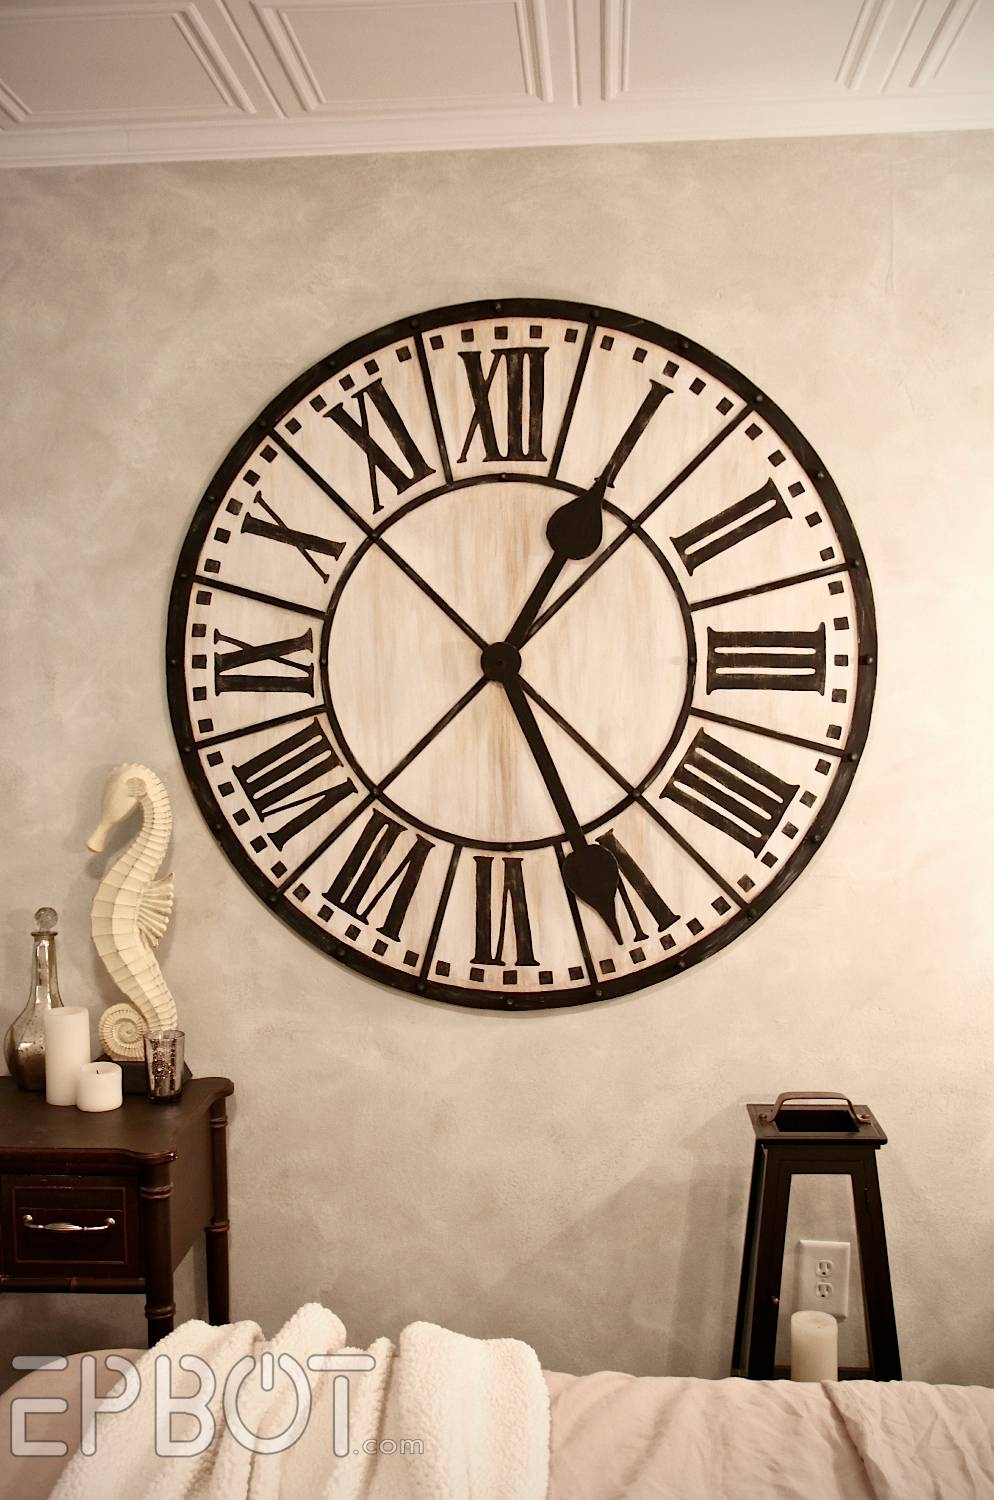 Electric Wall Clock Gear Wall Clock Big White Wall Clock Wall For Current Large Metal Wall Art Clocks (Gallery 7 of 20)